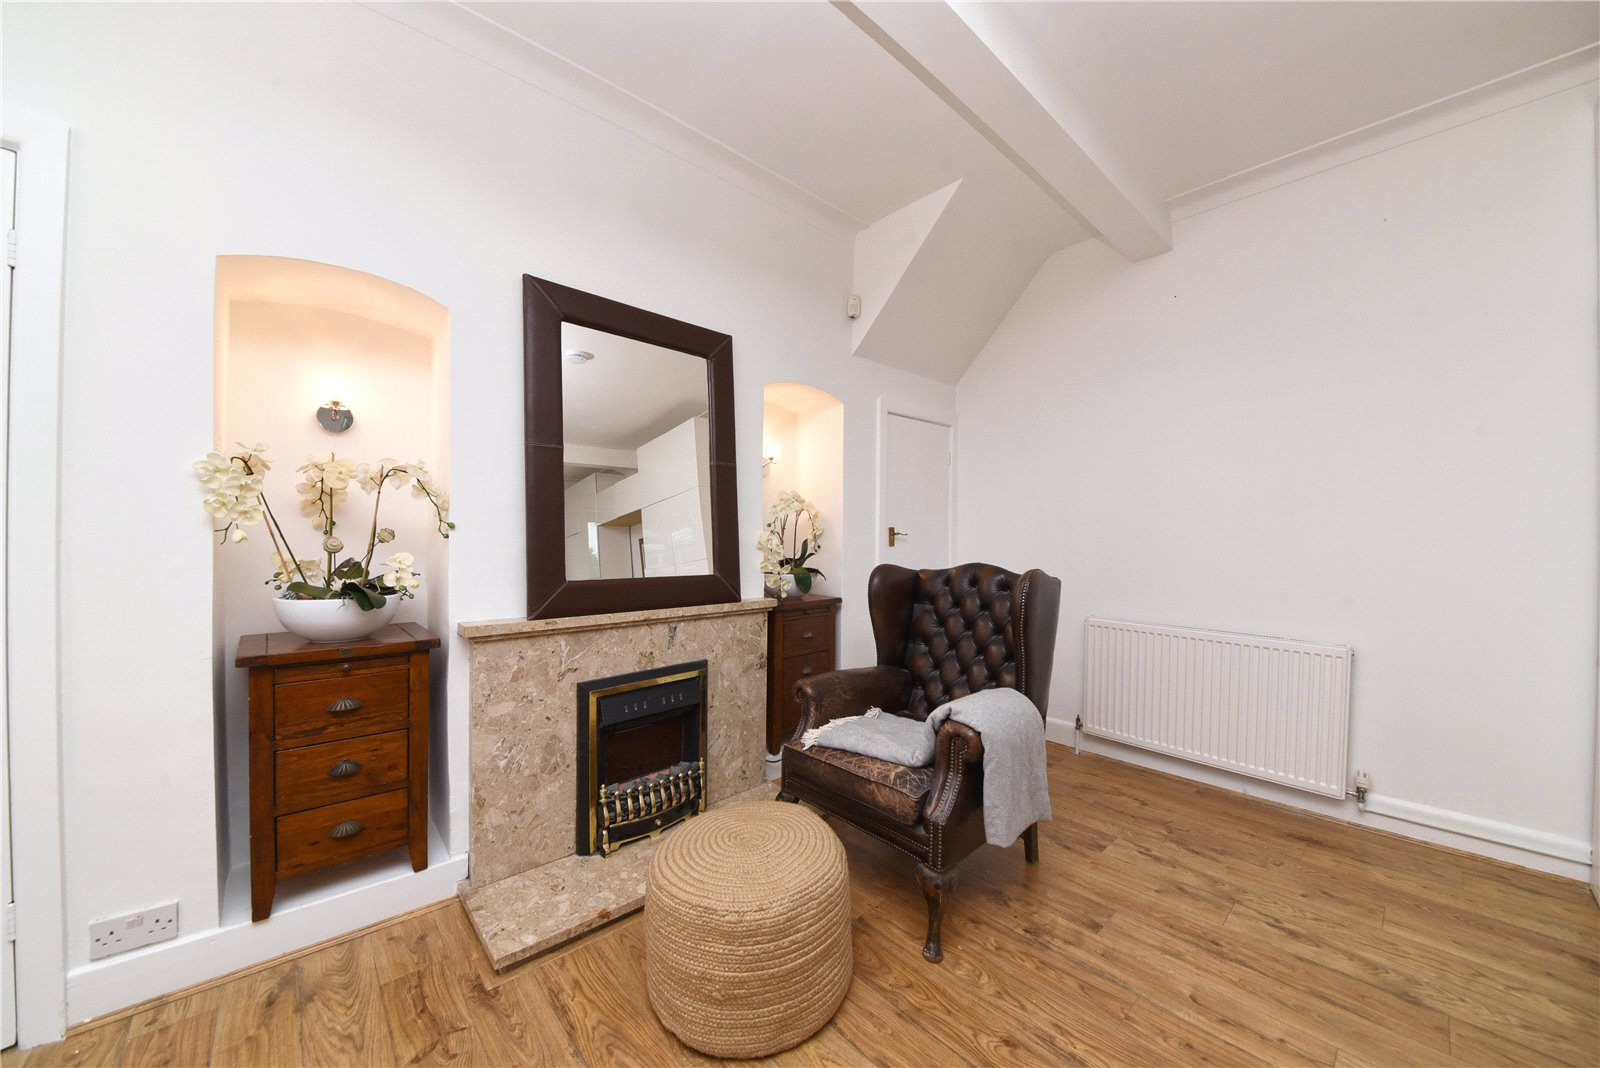 3 bed house for sale in High Barnet, EN5 1AL  - Property Image 8